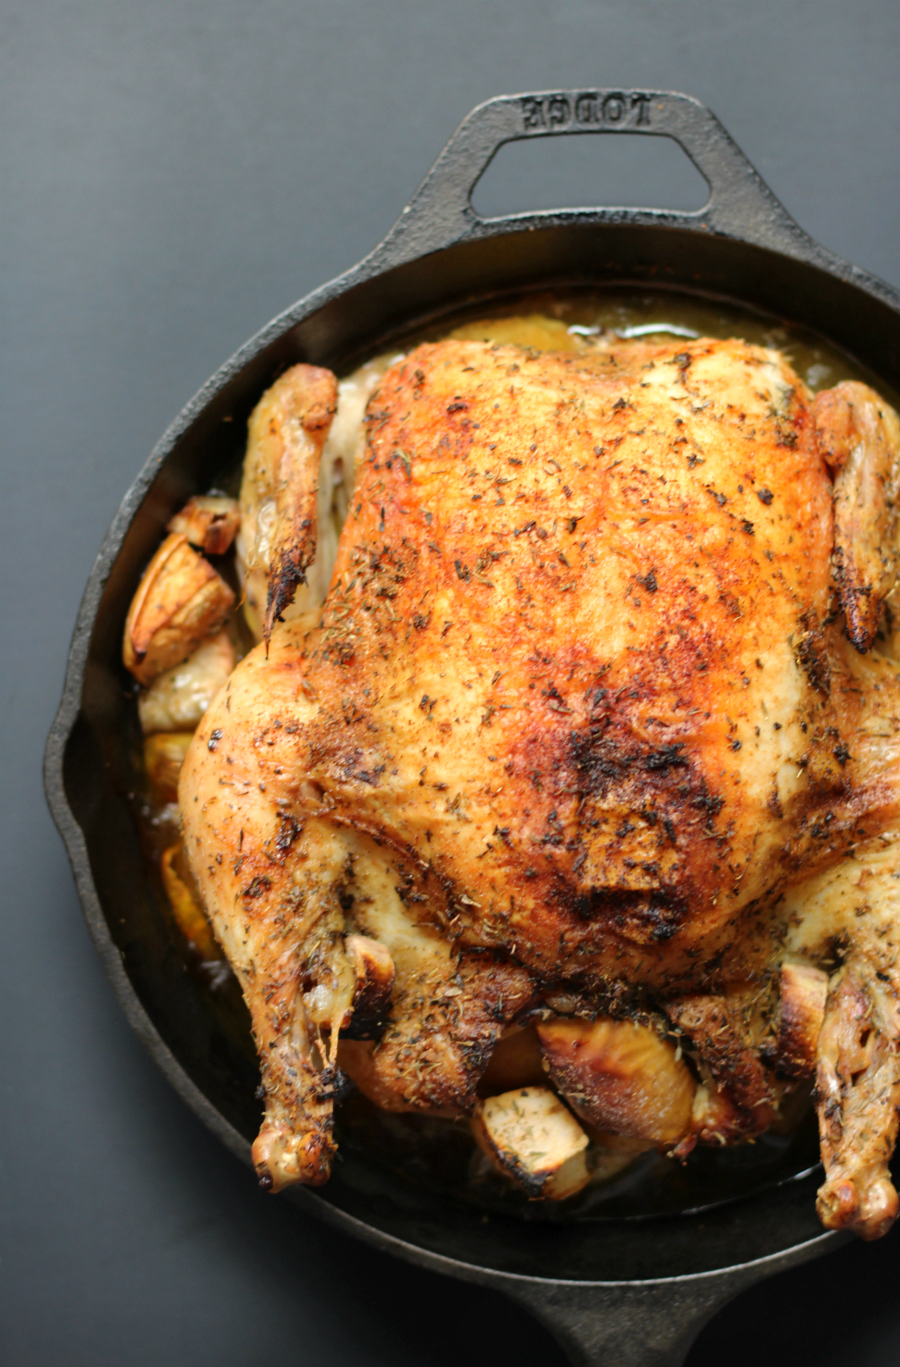 Easy Cast Iron Whole Roasted Chicken (Gluten-Free, Paleo) | Strength and Sunshine @RebeccaGF666 A simple and easy cast iron whole roasted chicken that's full of flavor, perfectly moist and tender, and just waiting to be served at the dinner table! This recipe is gluten-free, allergy-free, and paleo using a no-fail method for success!